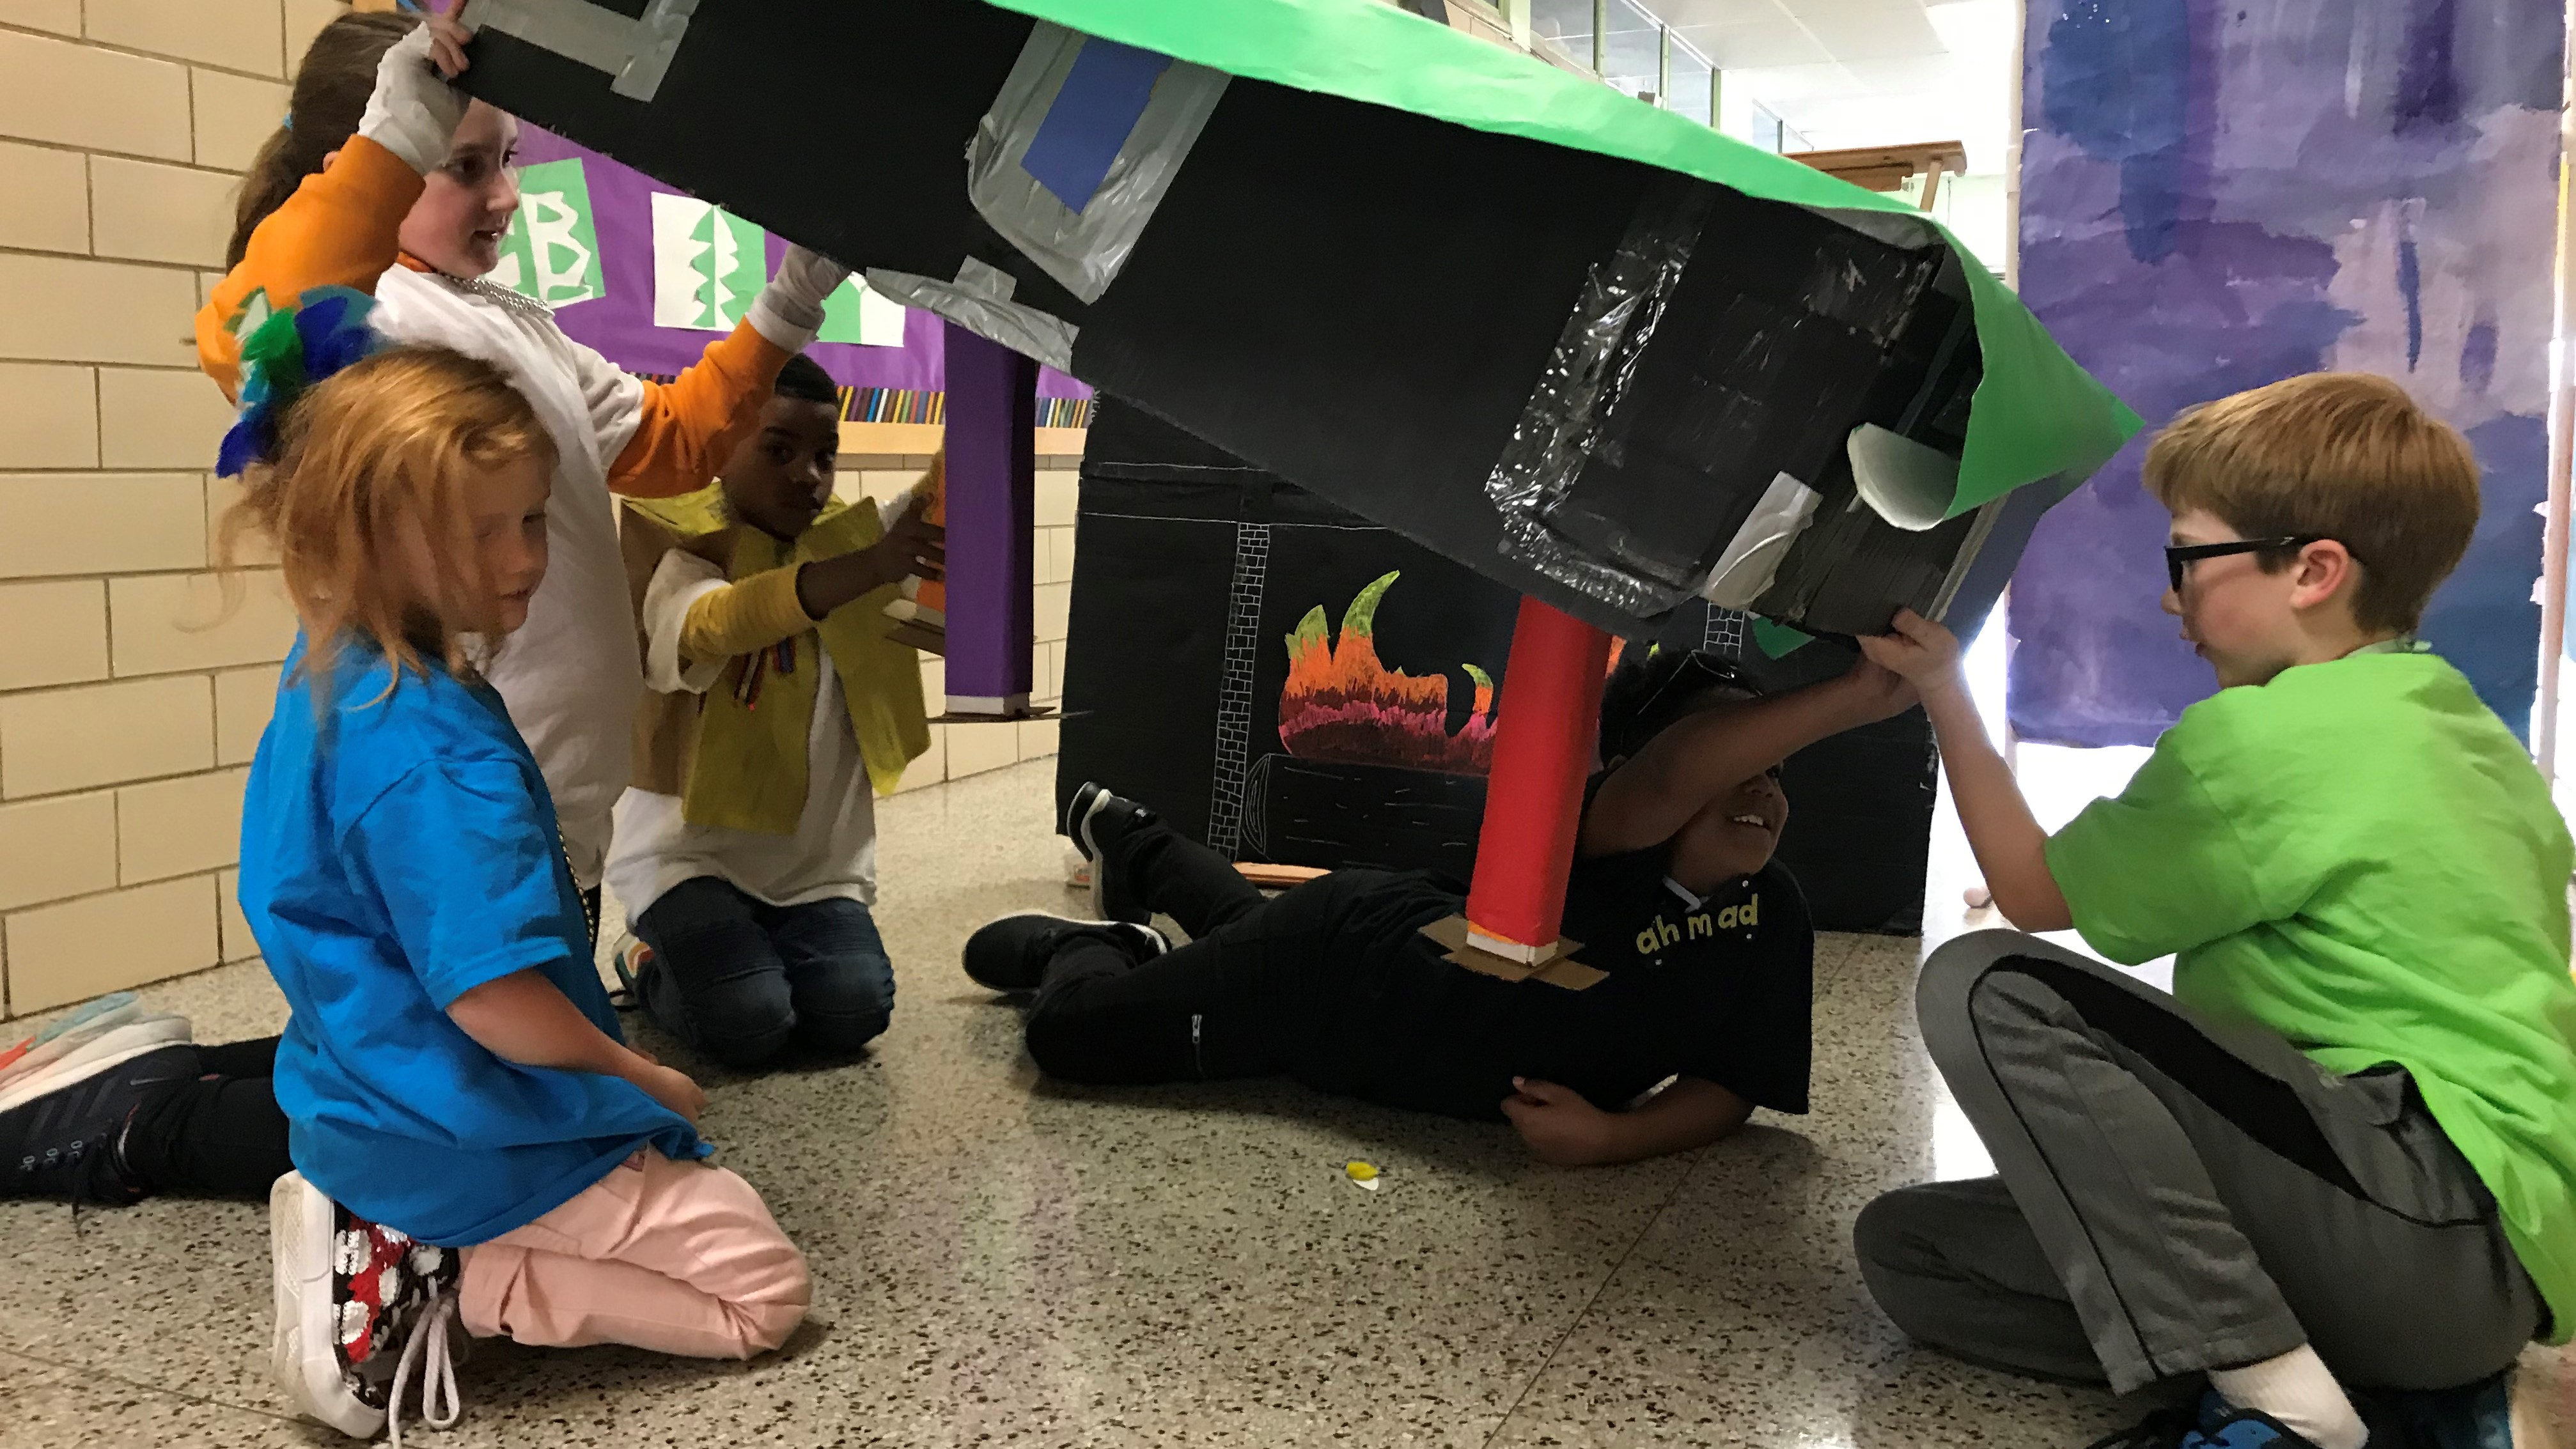 Green Magnet Academy students Birdie Lane (foreground) and (L-R) Sloan Frix, John Whittington, Ahmad Mack and Dansten Nichols, work on their Destination Imagination project, based on the board game